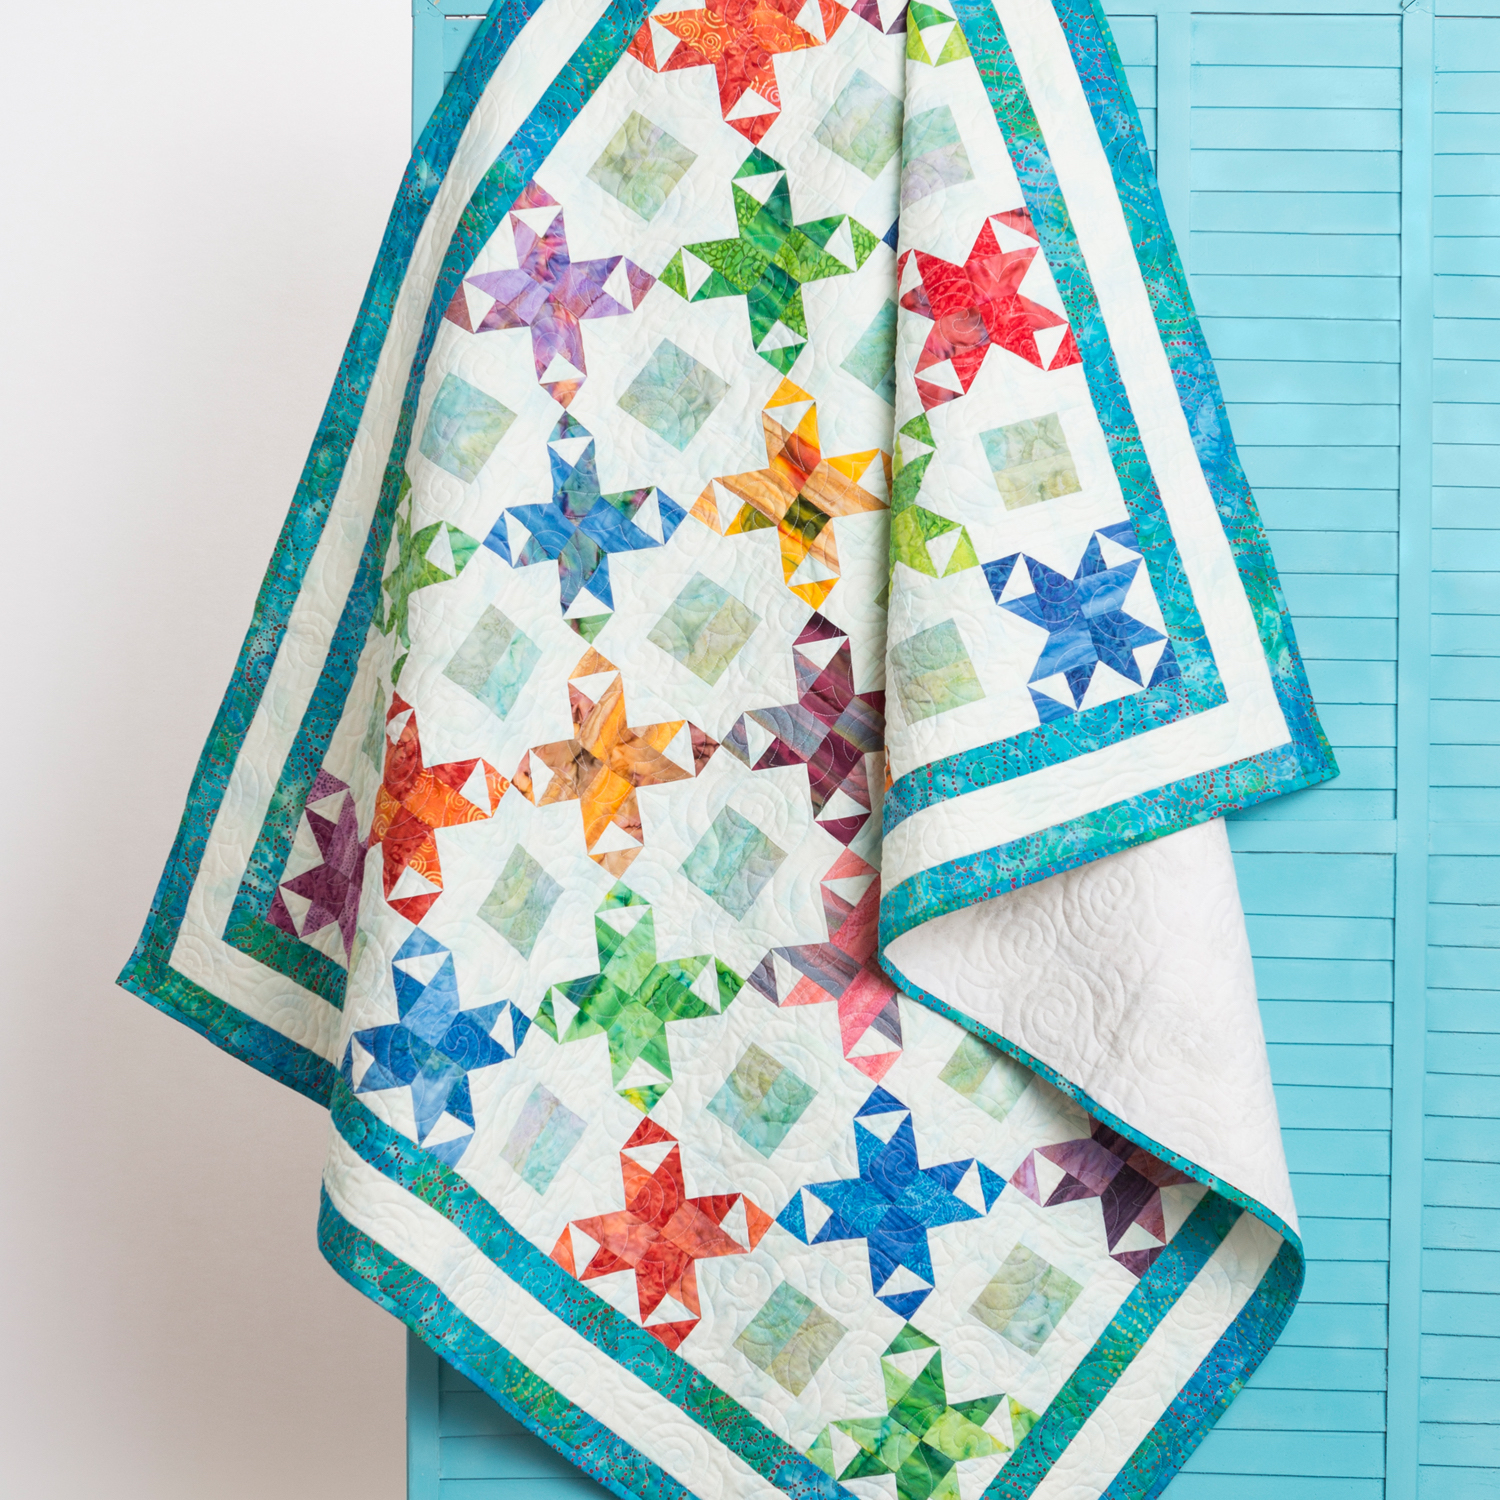 PQ11035-6in-star-surprise-throw-quilt-lifestyle-1500x1500